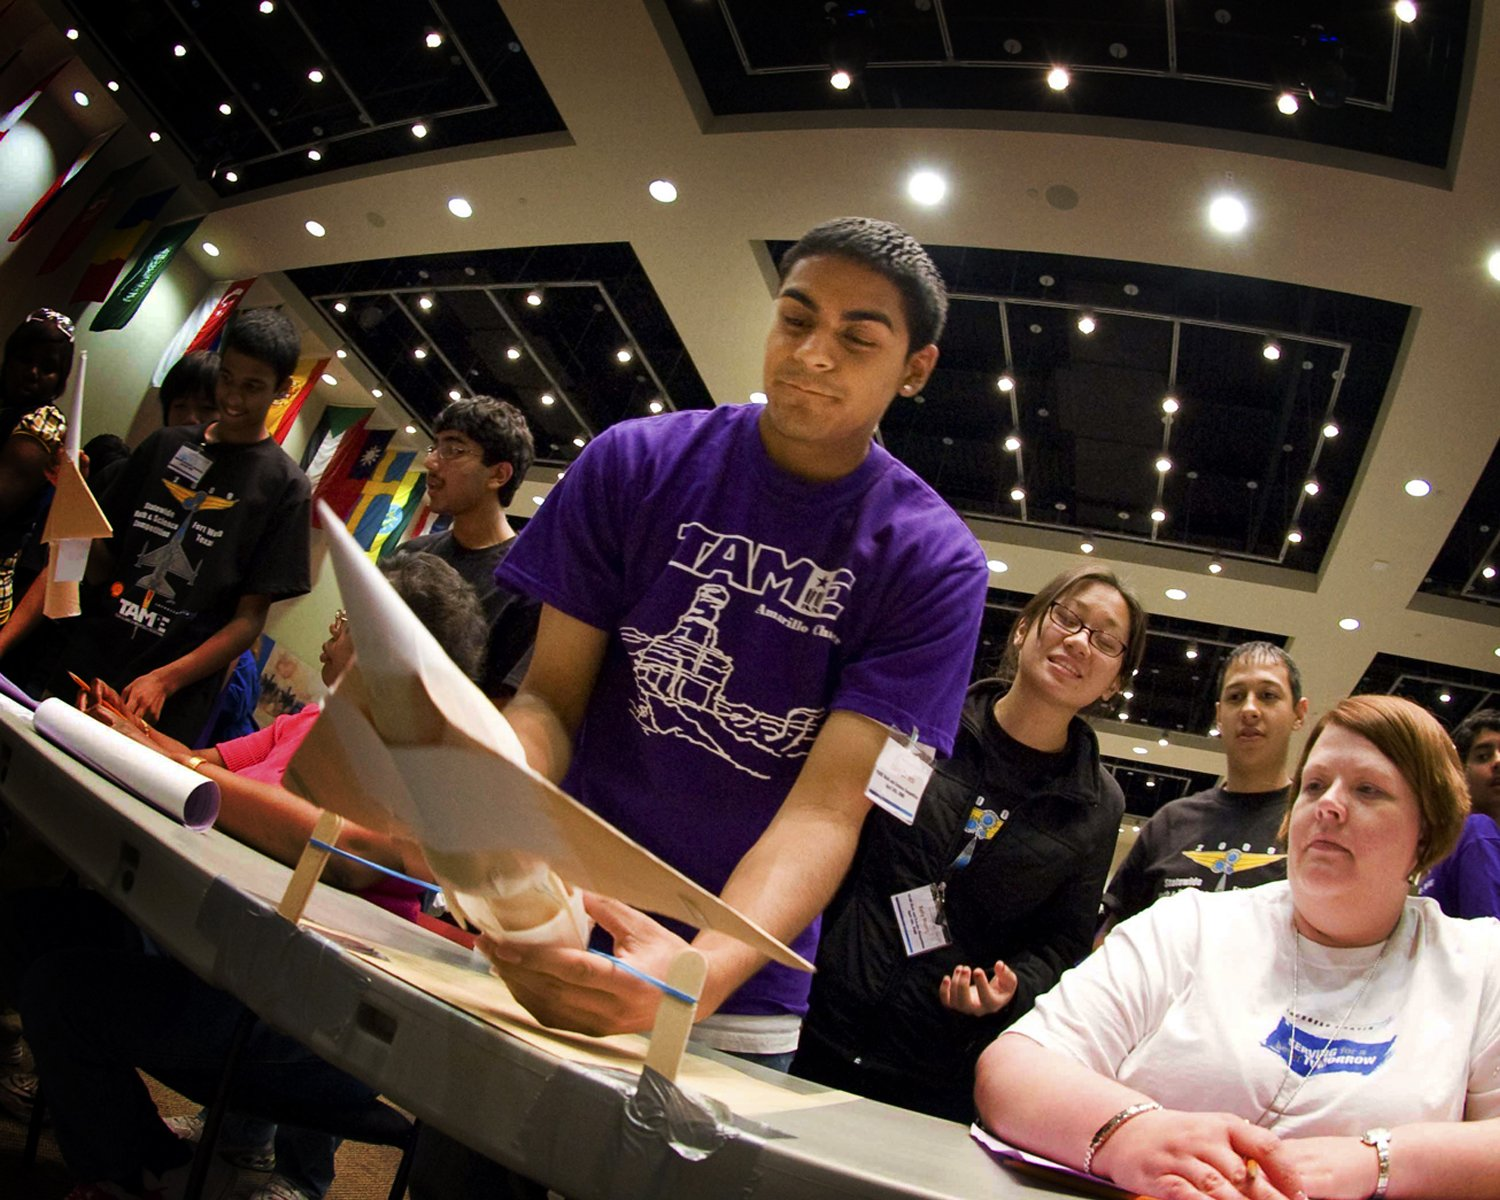 Students compete in the Engineering Design Challenge at the State Math and Science Competition at Lockheed Martin Aeronautics in 2009.